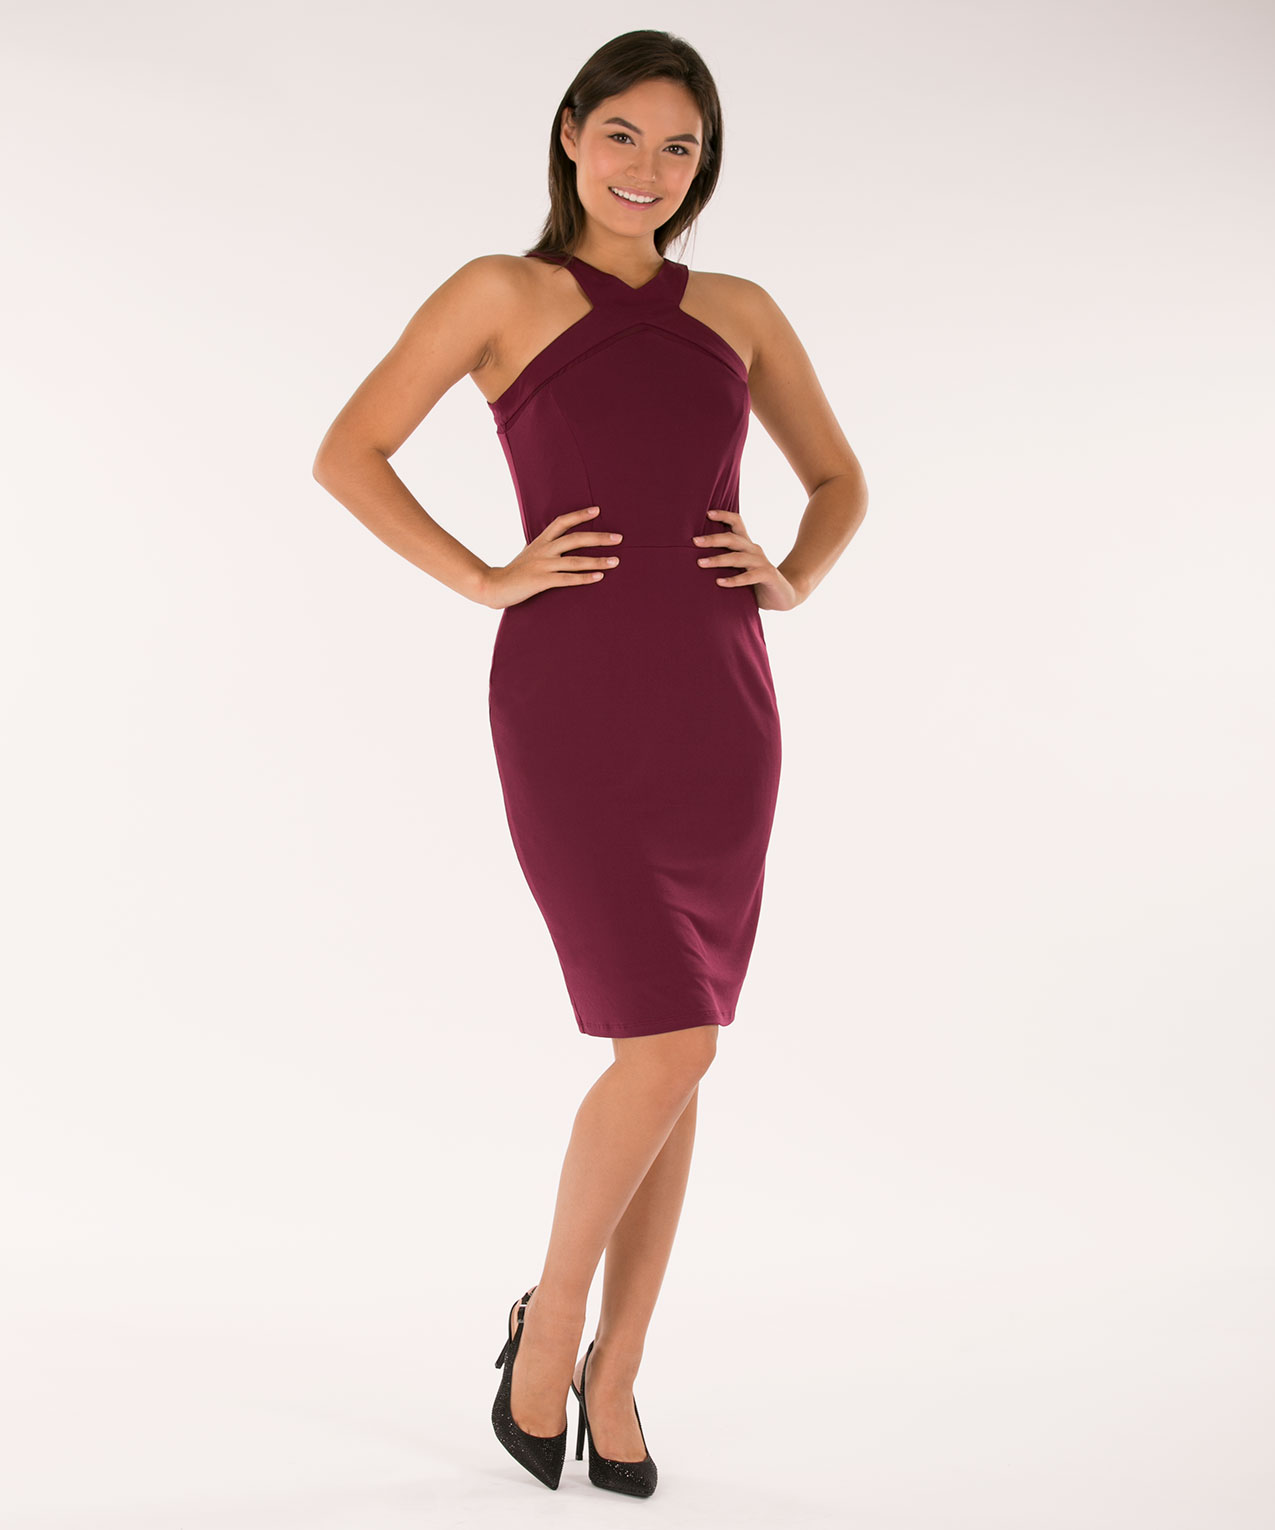 Halter Neck Sheath Dress, Wine, hi-res